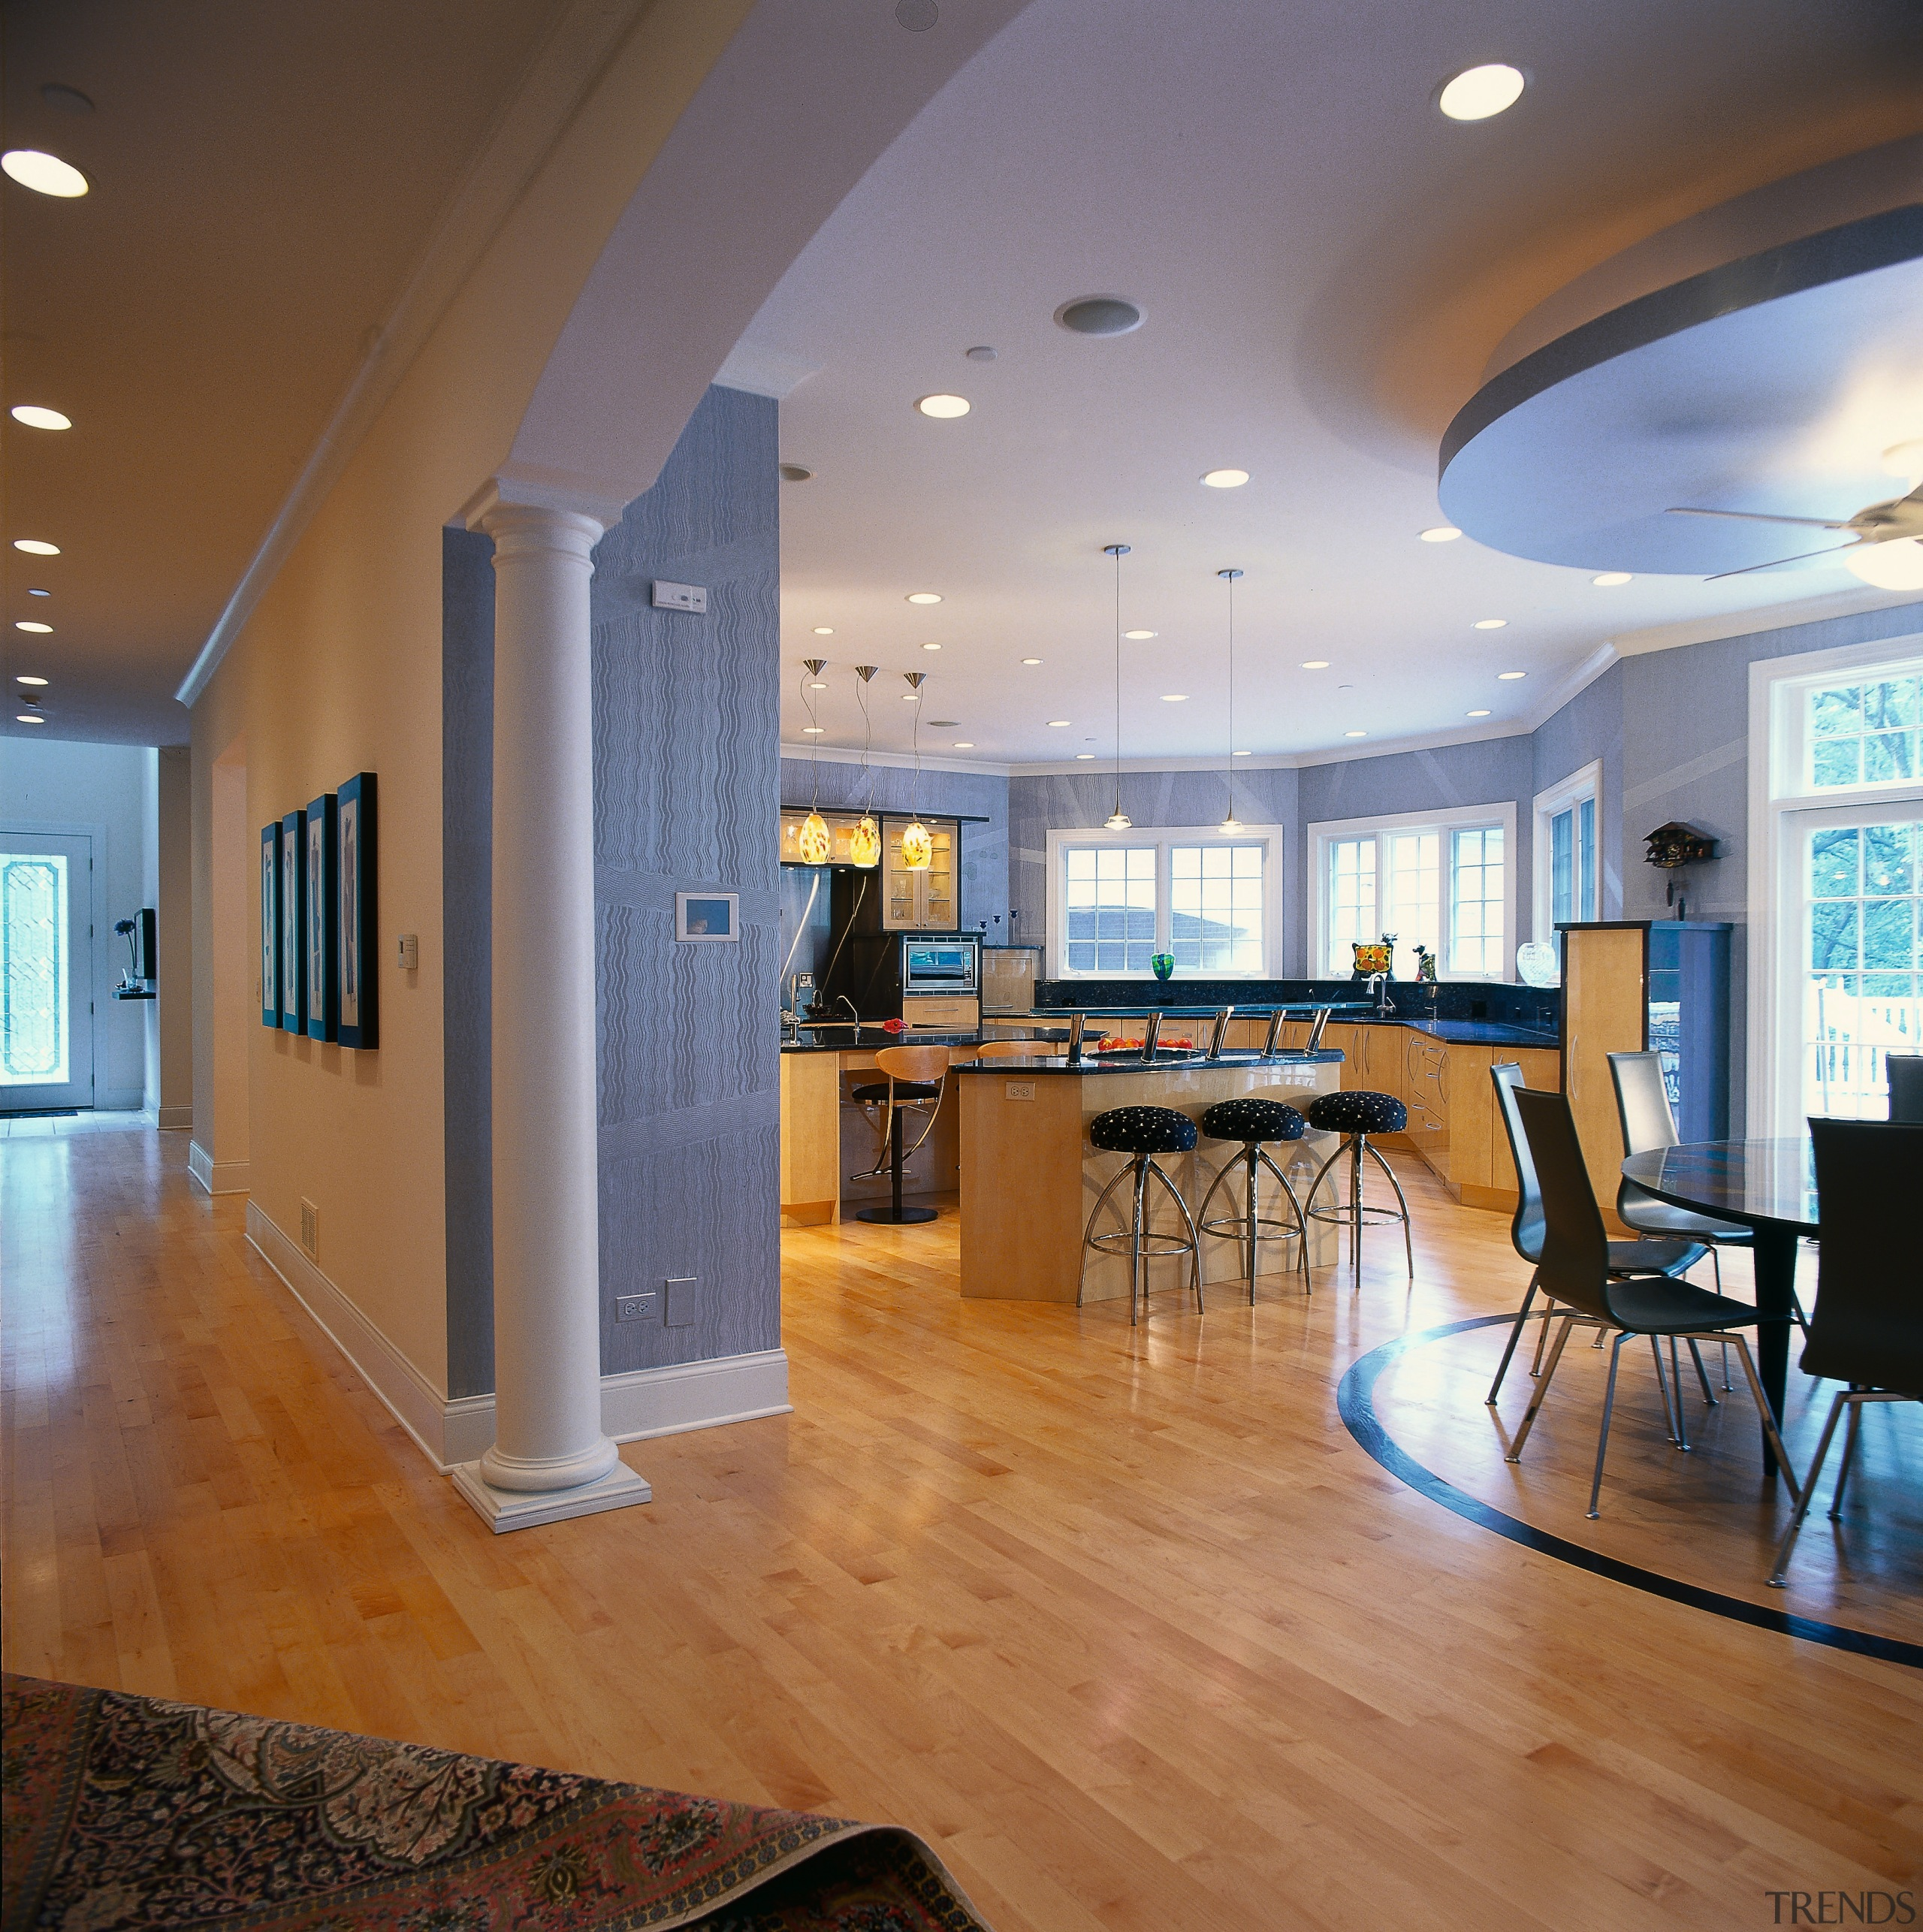 Broad view of the kitchen and dining areas ceiling, daylighting, floor, flooring, hardwood, interior design, laminate flooring, living room, lobby, real estate, room, wood flooring, brown, gray